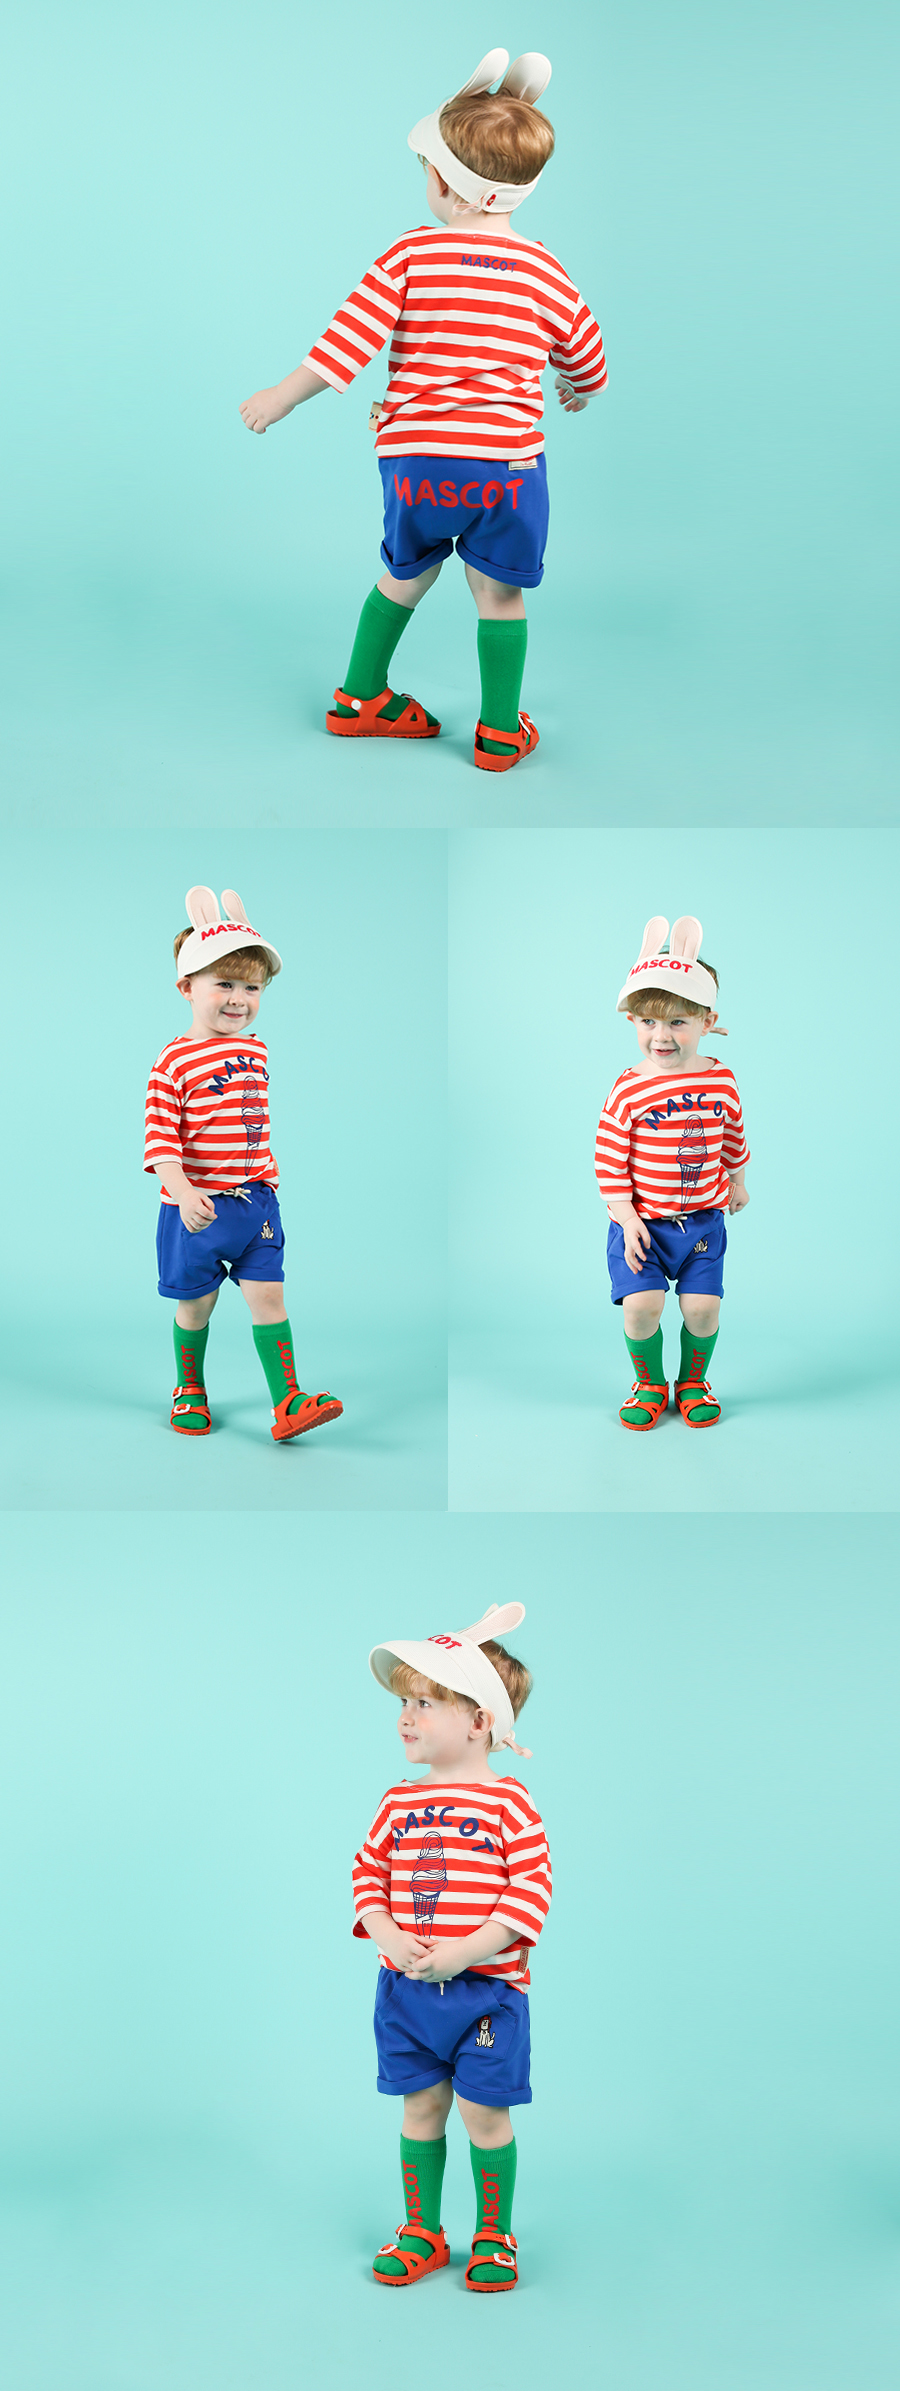 Mascot baby big pocket short pants 상세 이미지